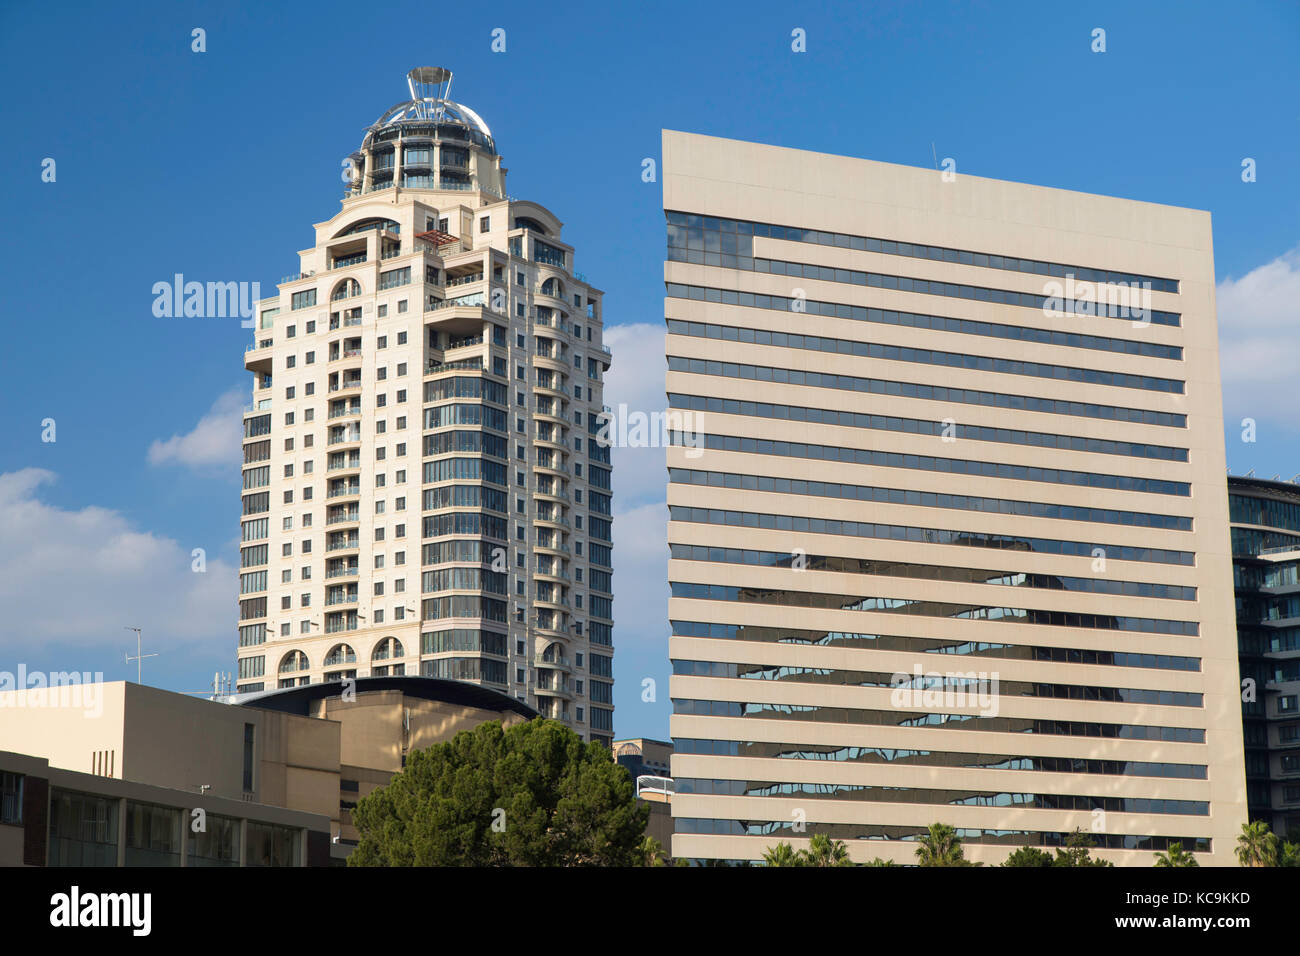 Michelangelo Towers and Intercontinental Hotel, Sandton, Johannesburg, Gauteng, South Africa - Stock Image